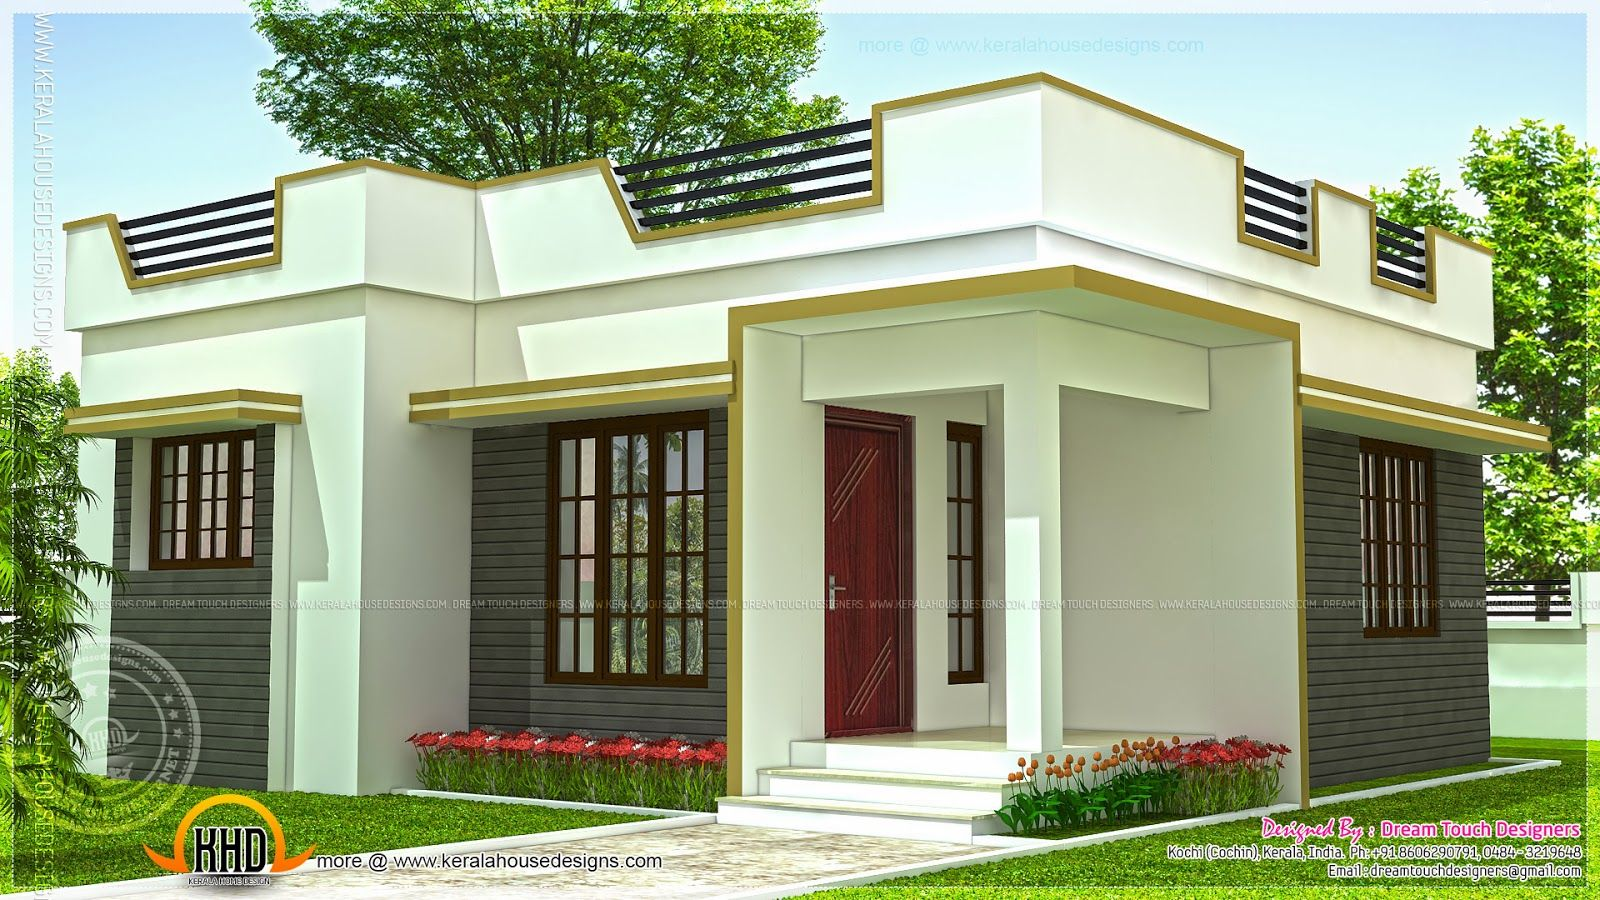 Lately 21 small house design kerala small house for Exterior house designs indian style